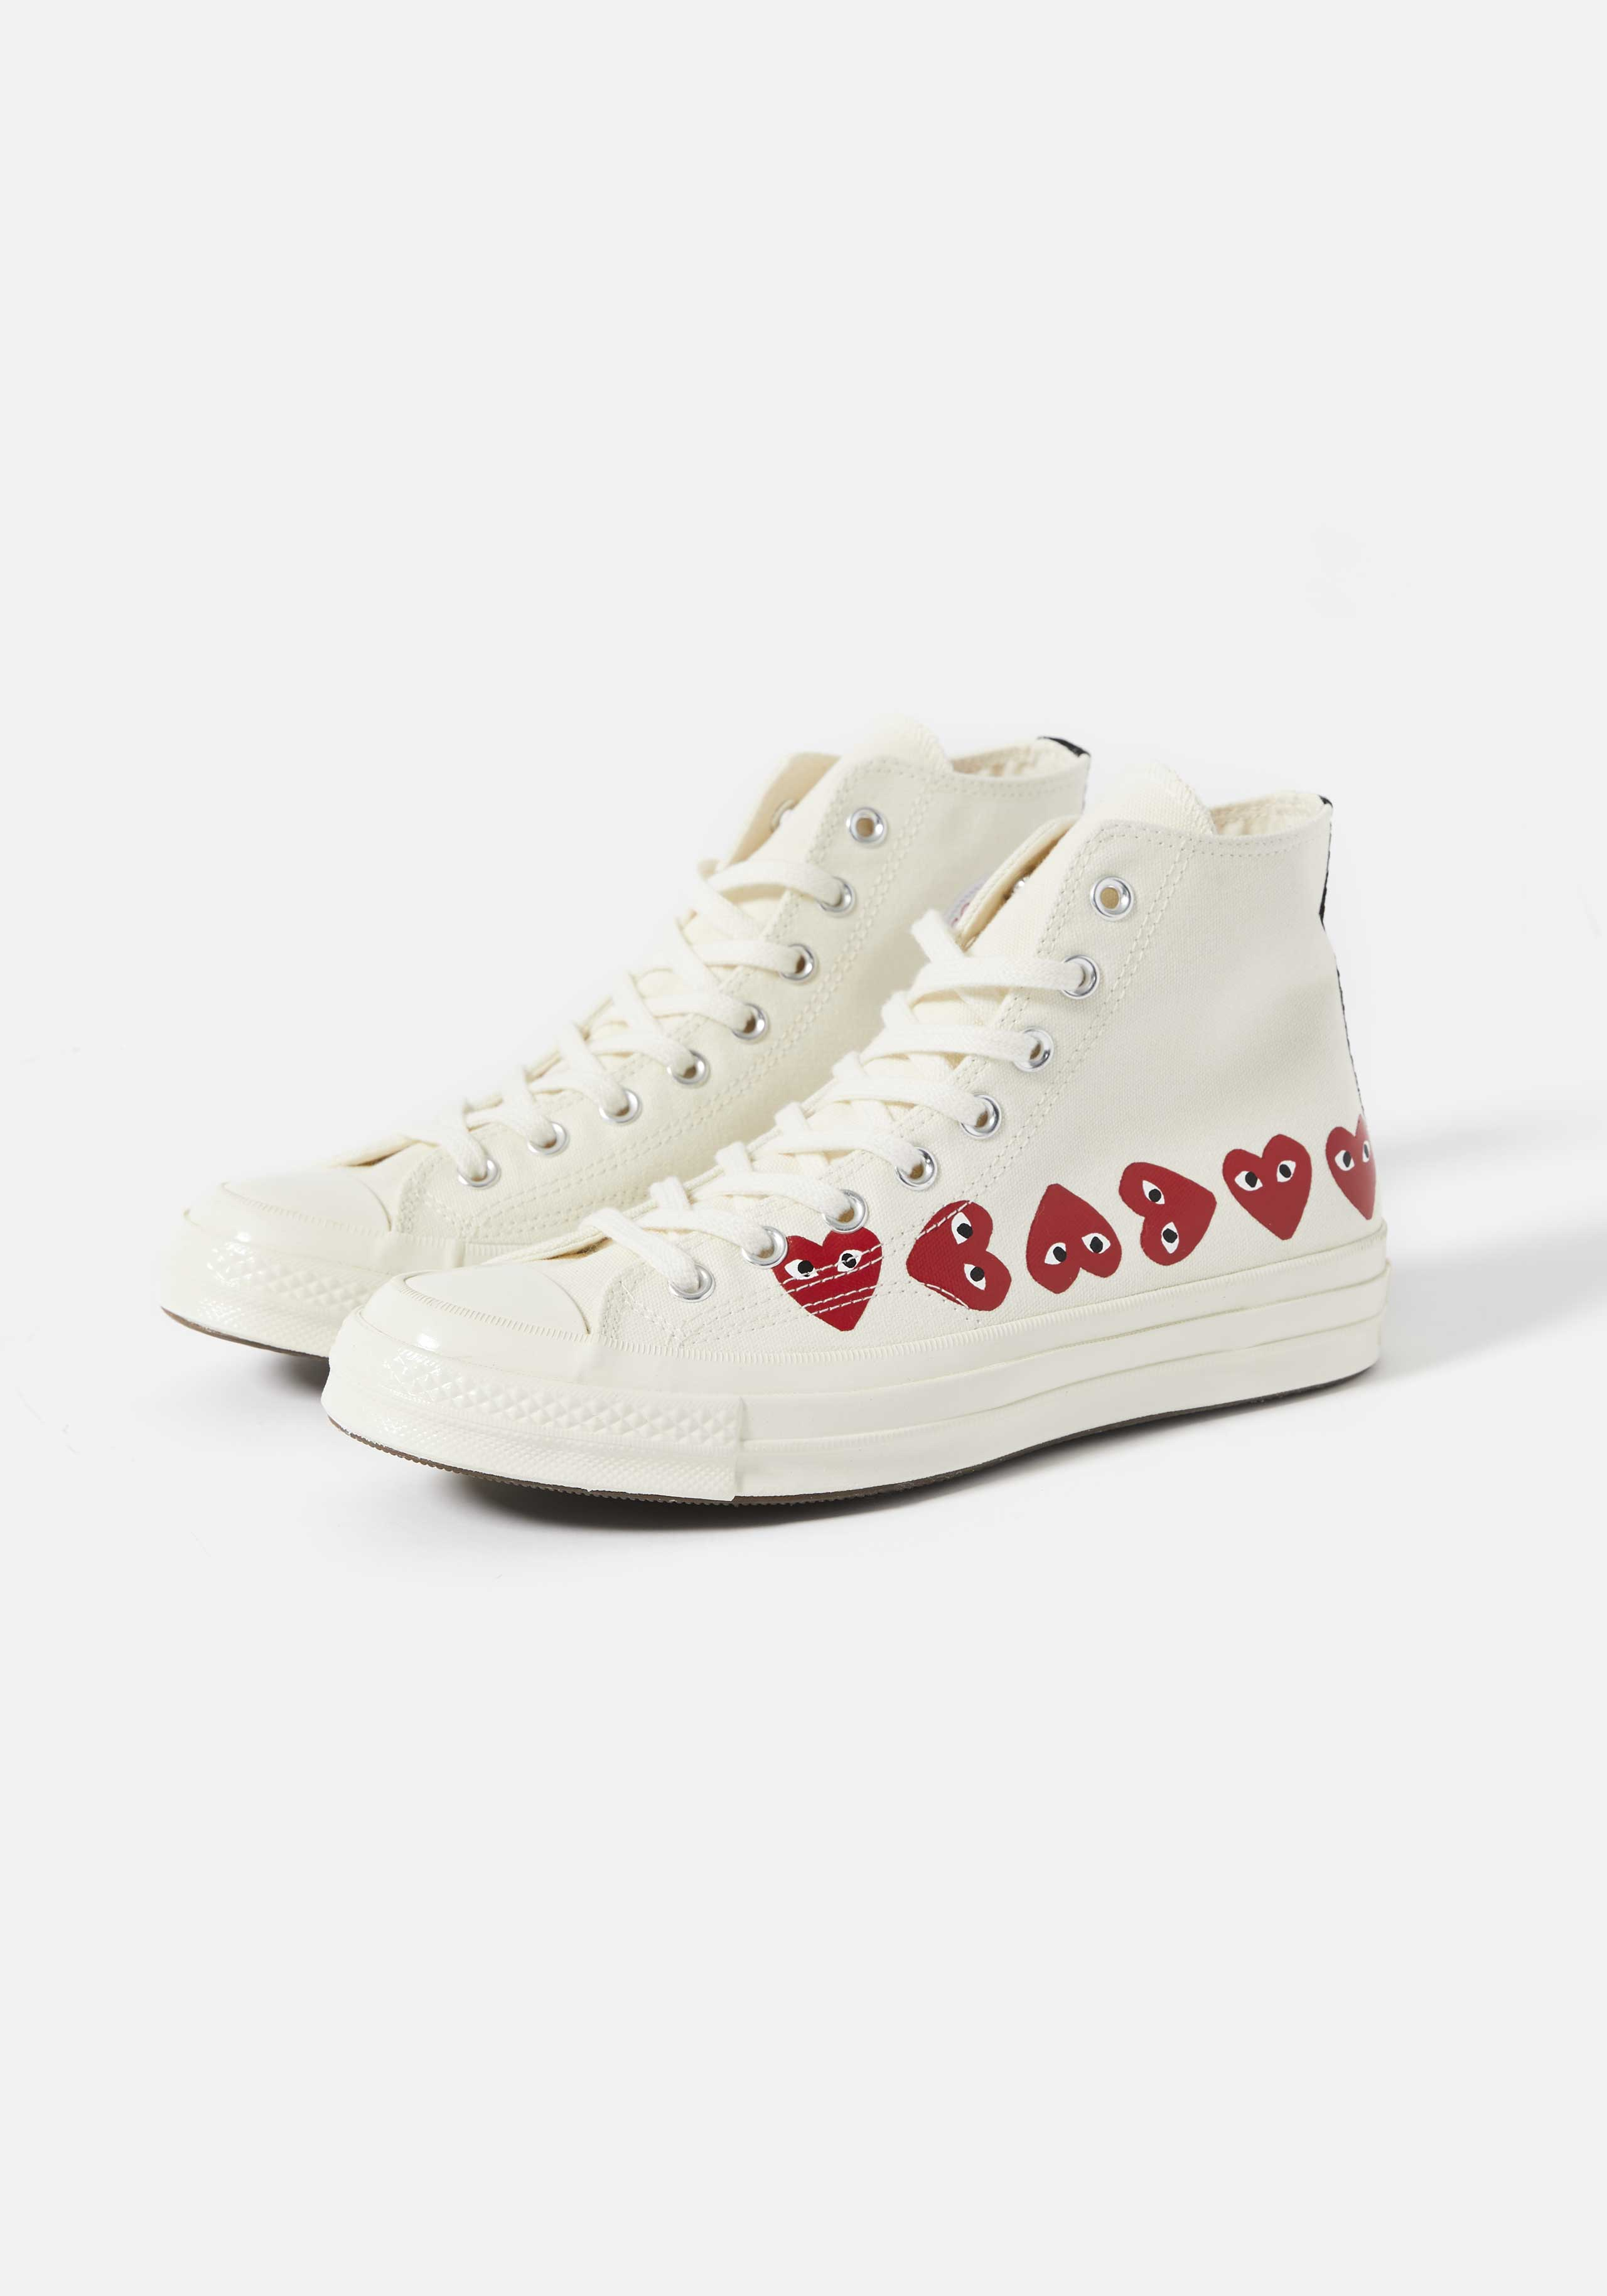 cdg play converse multi heart 70's high 2